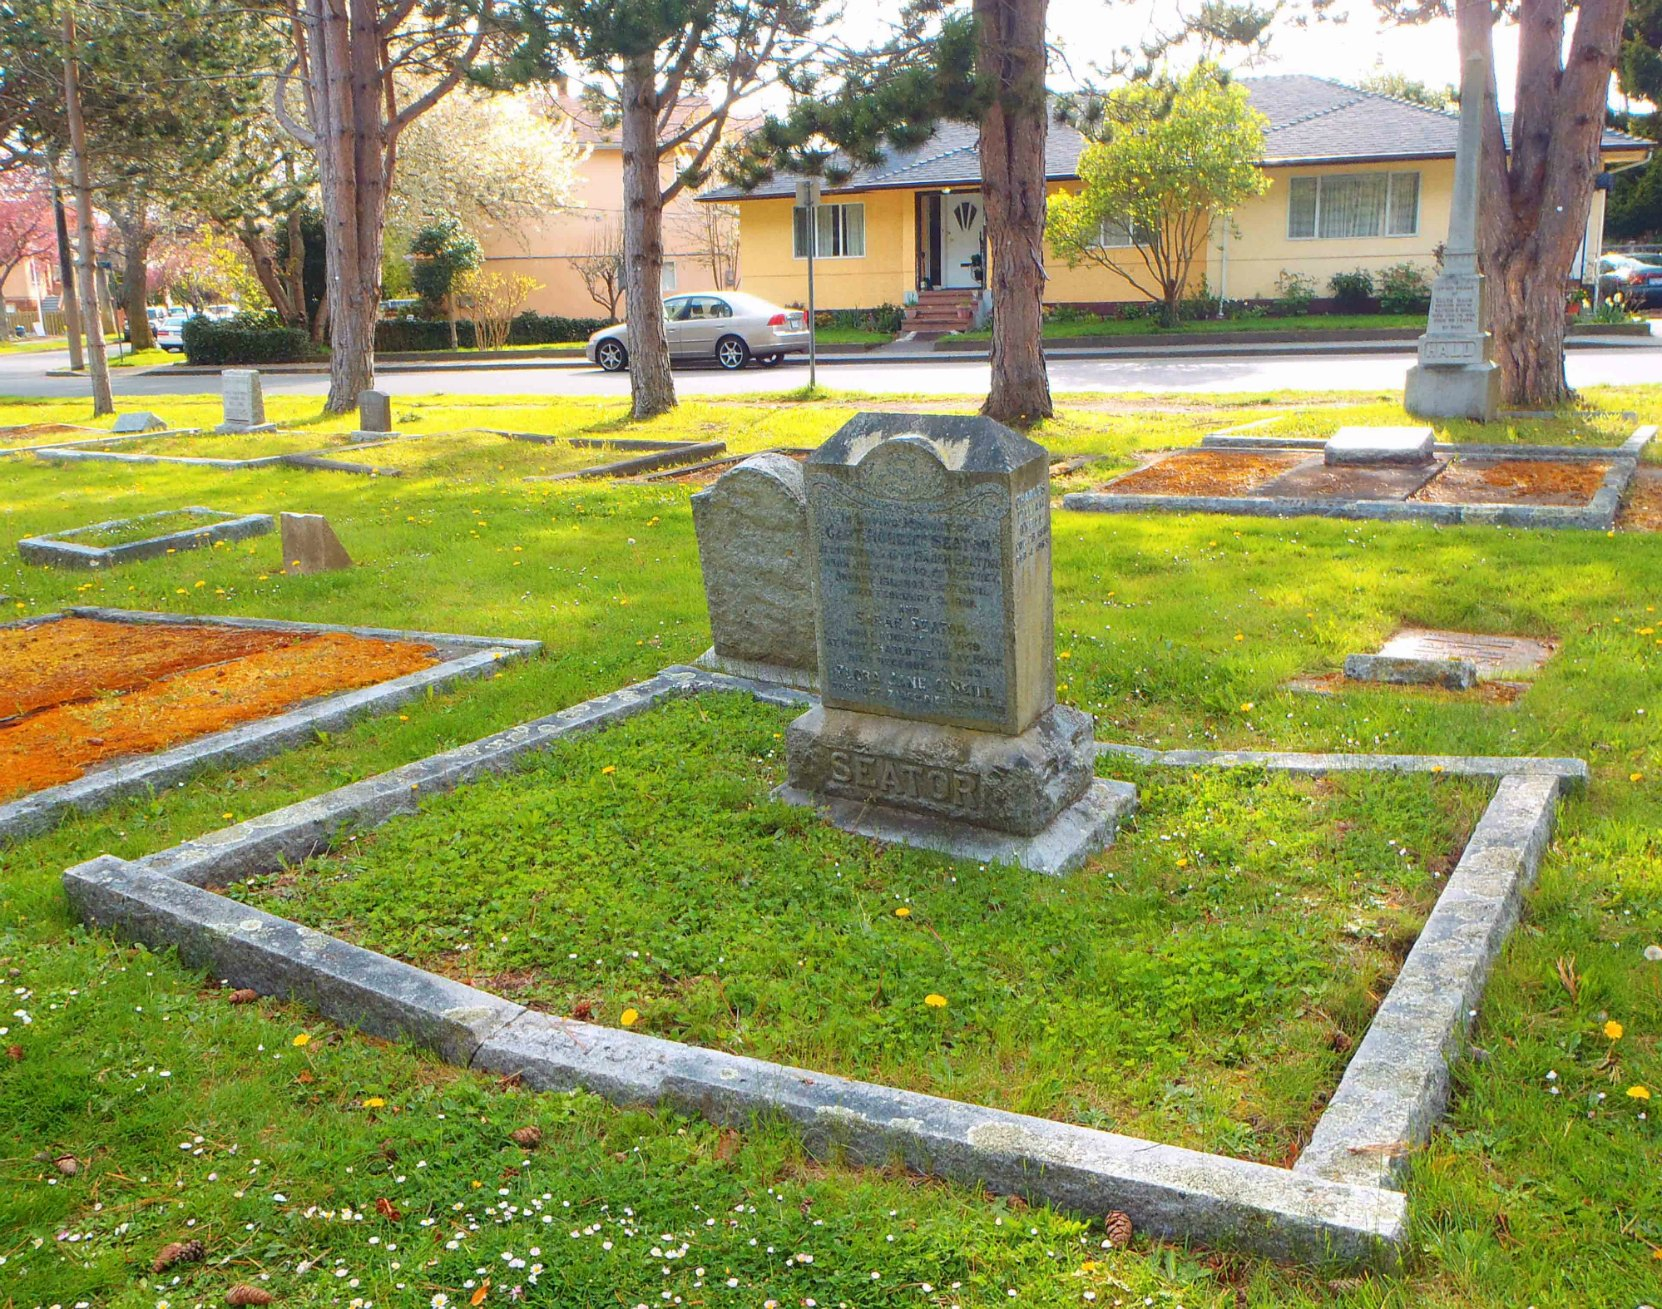 Charles William O'Neill, family burial plot, Ross Bay Cemetery, Victoria, B.C.